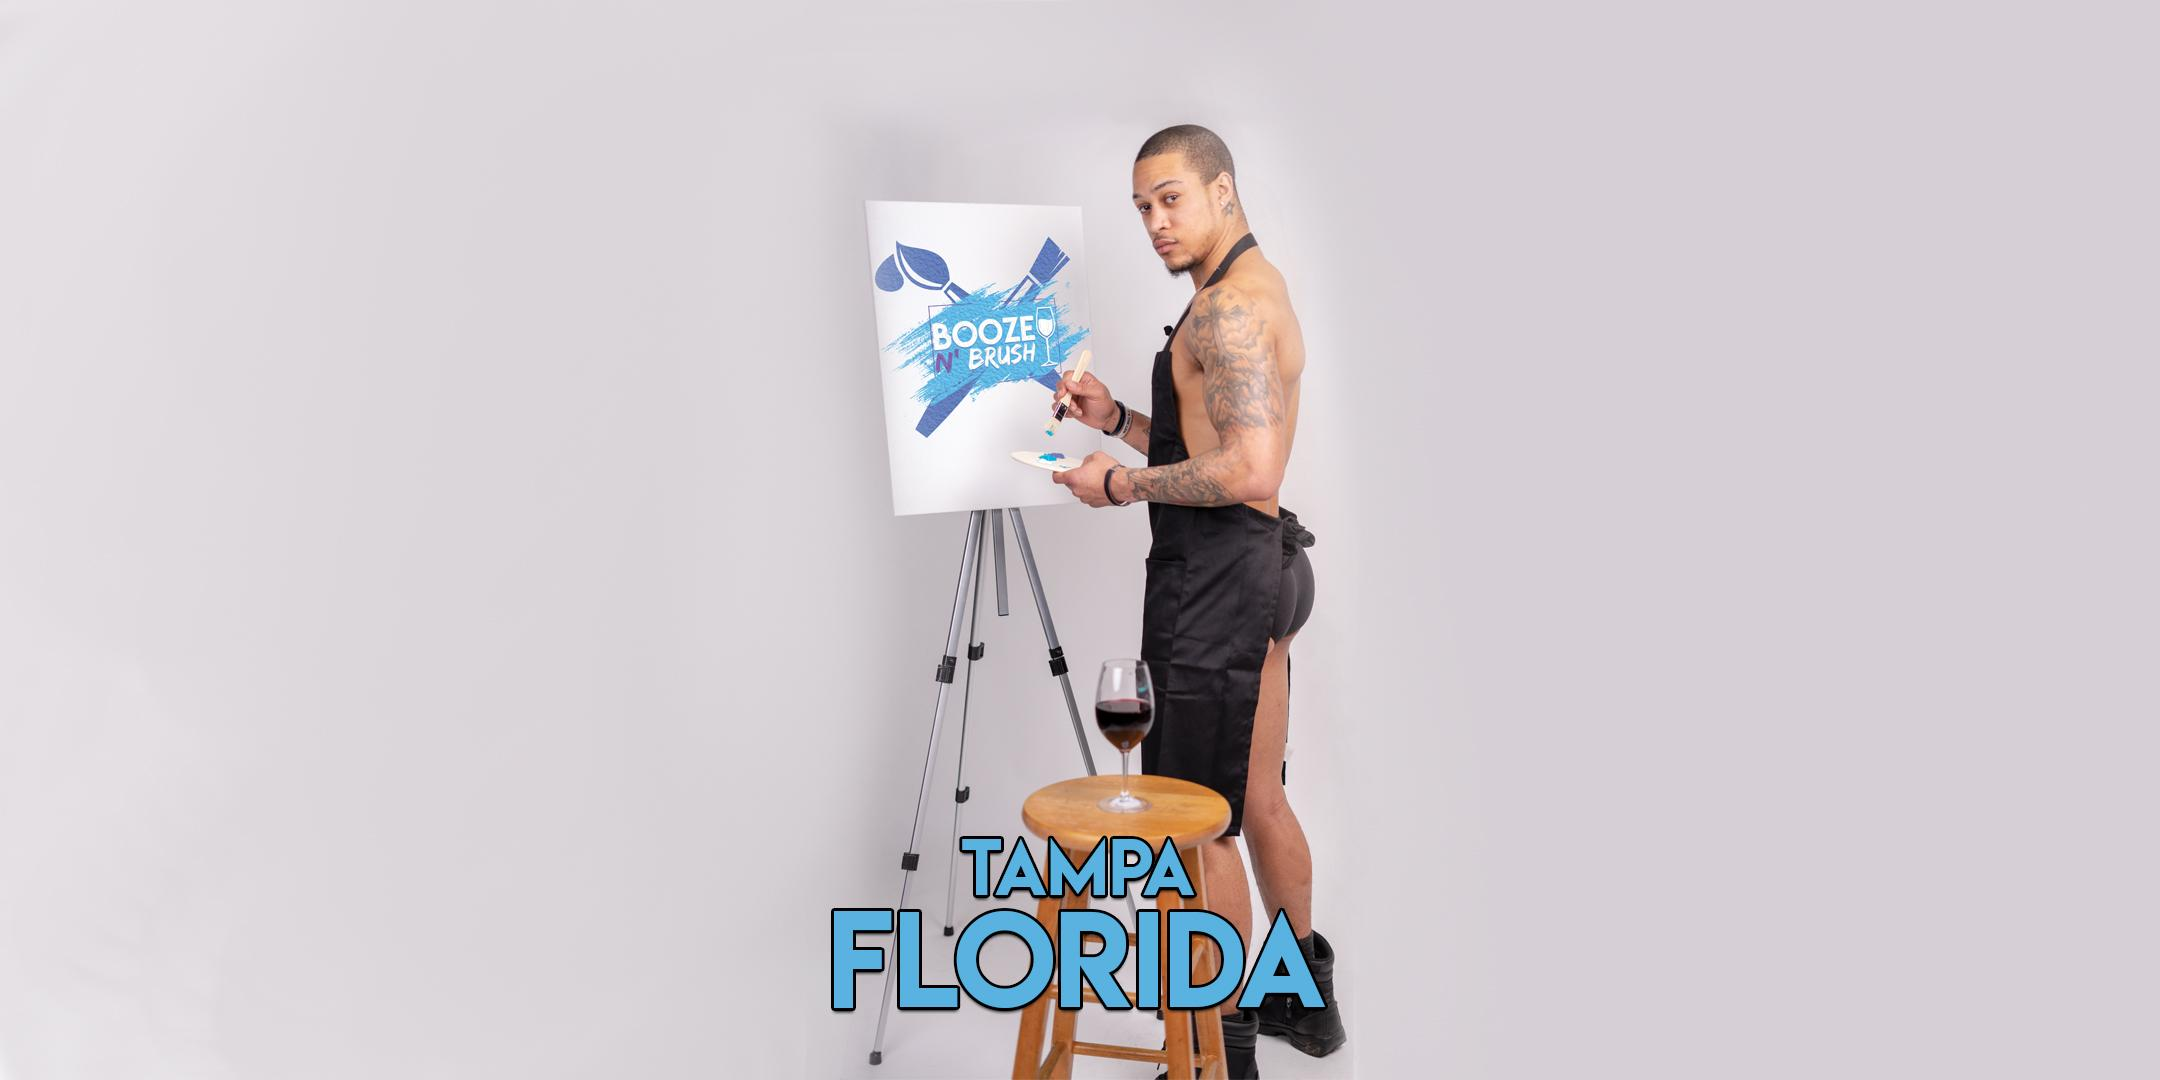 Booze N' Brush Next to Naked Sip n' Paint Tampa, FL - Exotic Male Model Painting Event